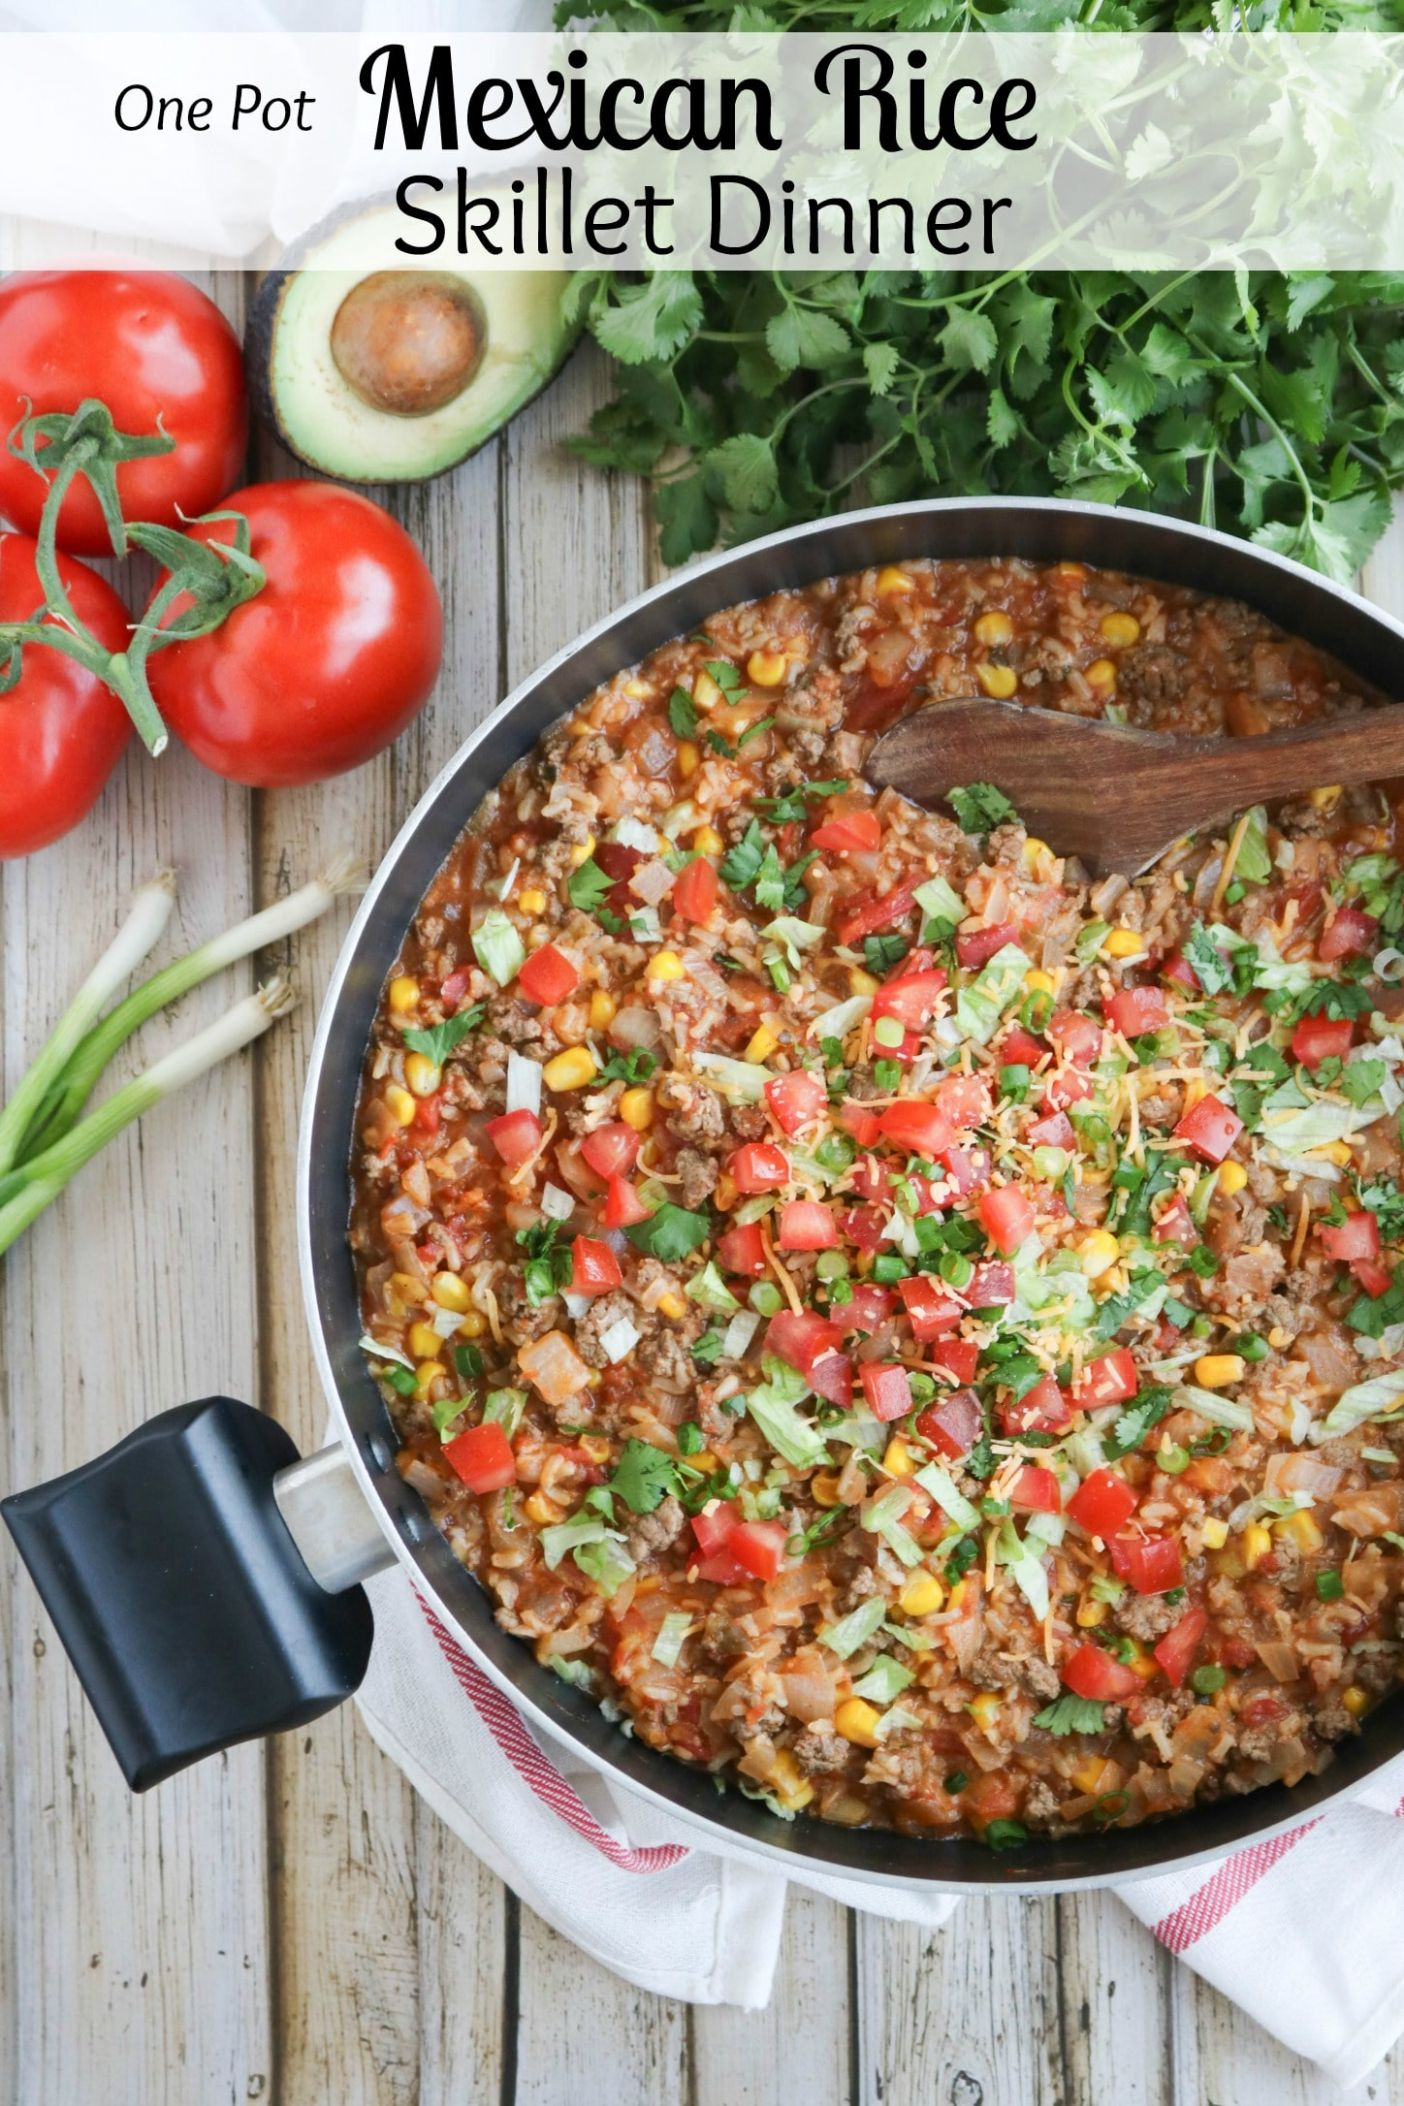 One-Pot Mexican Rice Skillet Dinner - Recipes Dinner For One